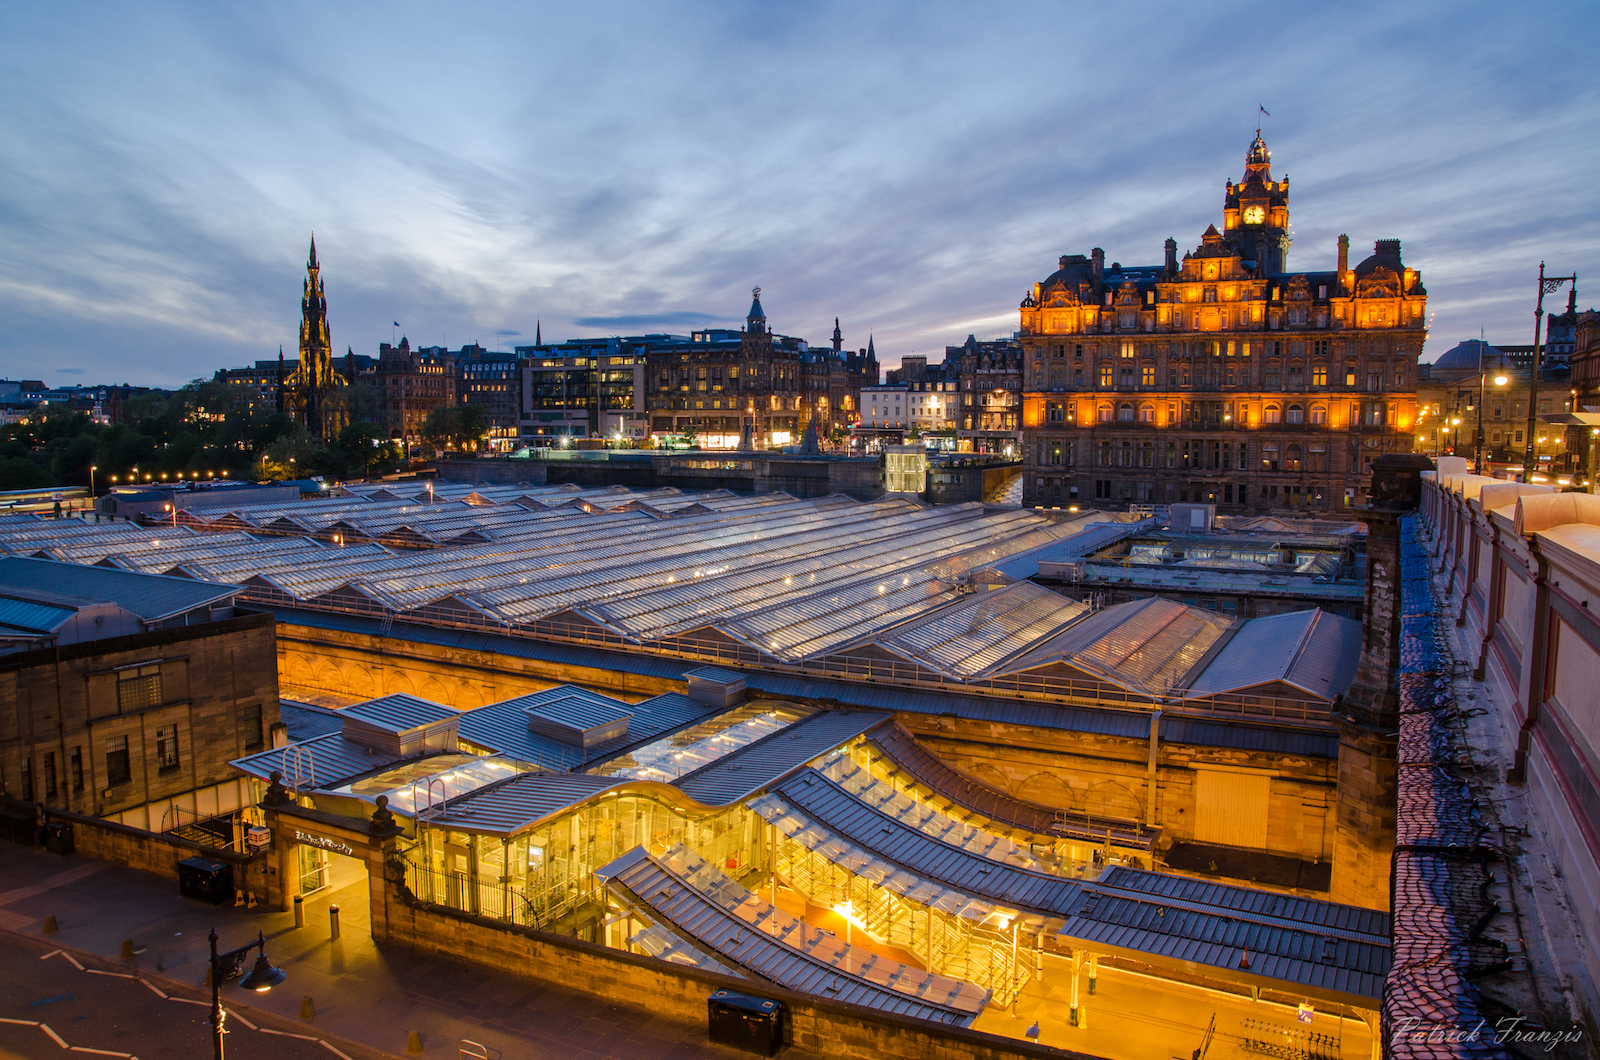 Balmoral Hotel and Waverly station in Edinburgh, Scotland